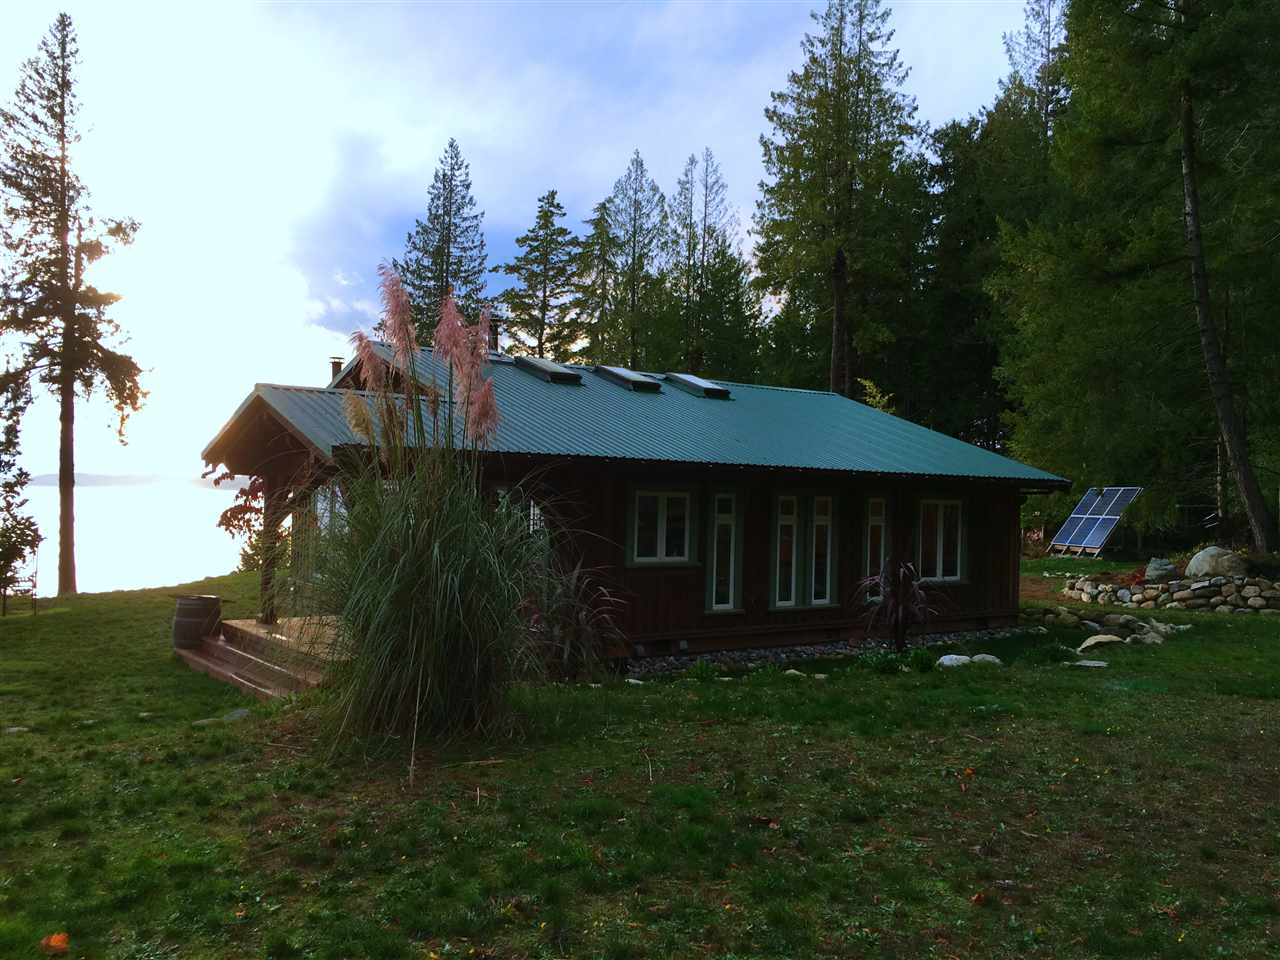 Photo 4: 407 BUCK OTTER Road in Halfmoon Bay: Halfmn Bay Secret Cv Redroofs House for sale (Sunshine Coast)  : MLS® # V1143093